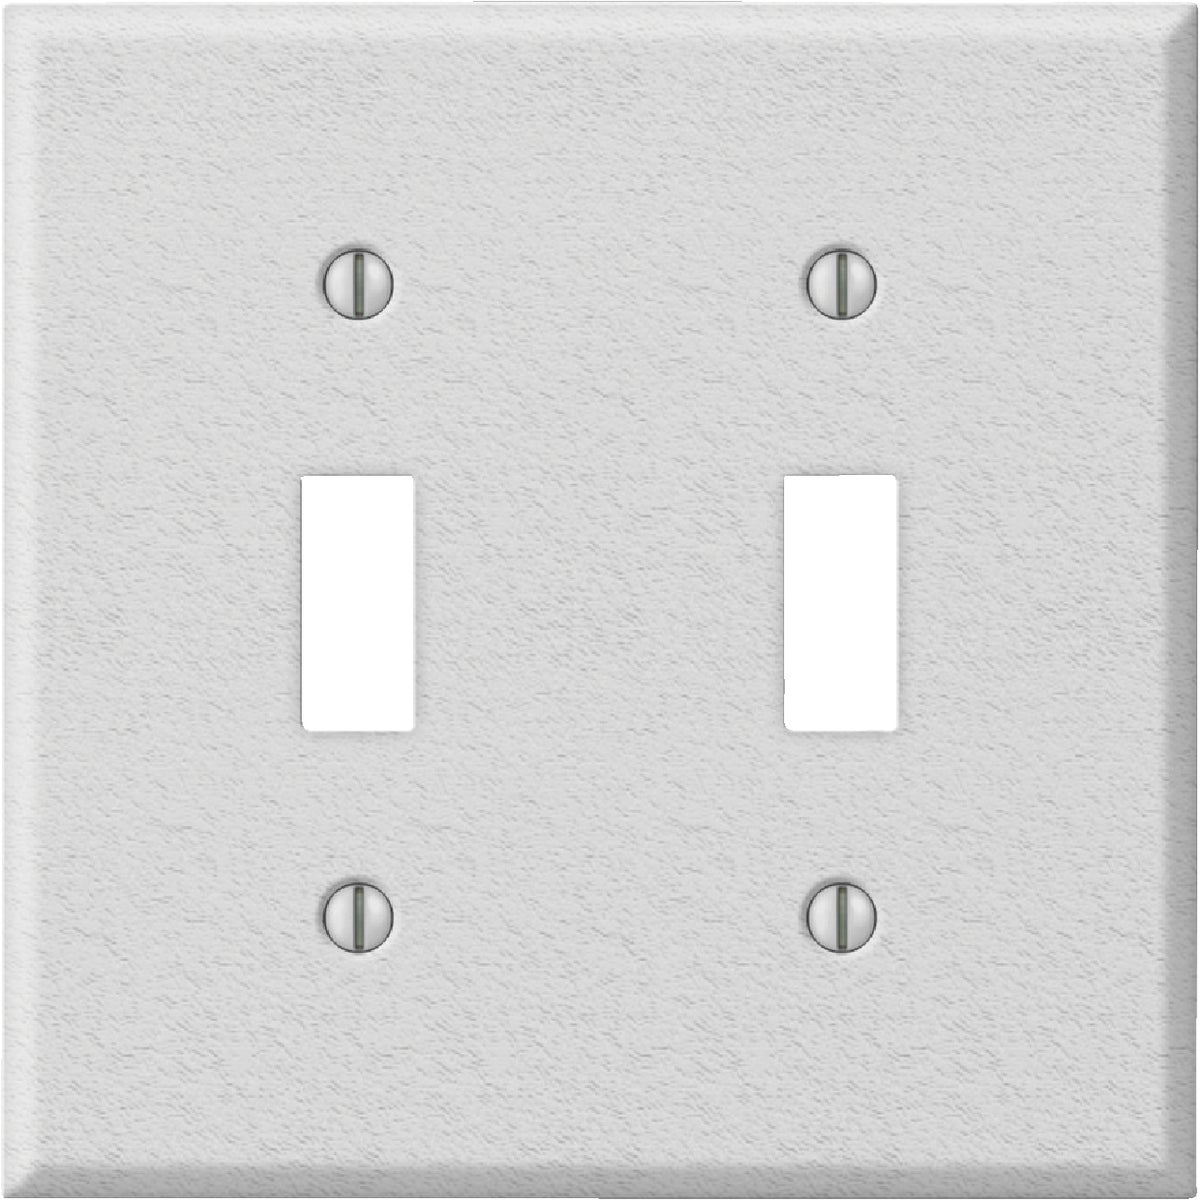 WHT DBL SWTCH WALL PLATE - 8WK102 by Jackson Deerfield Mf